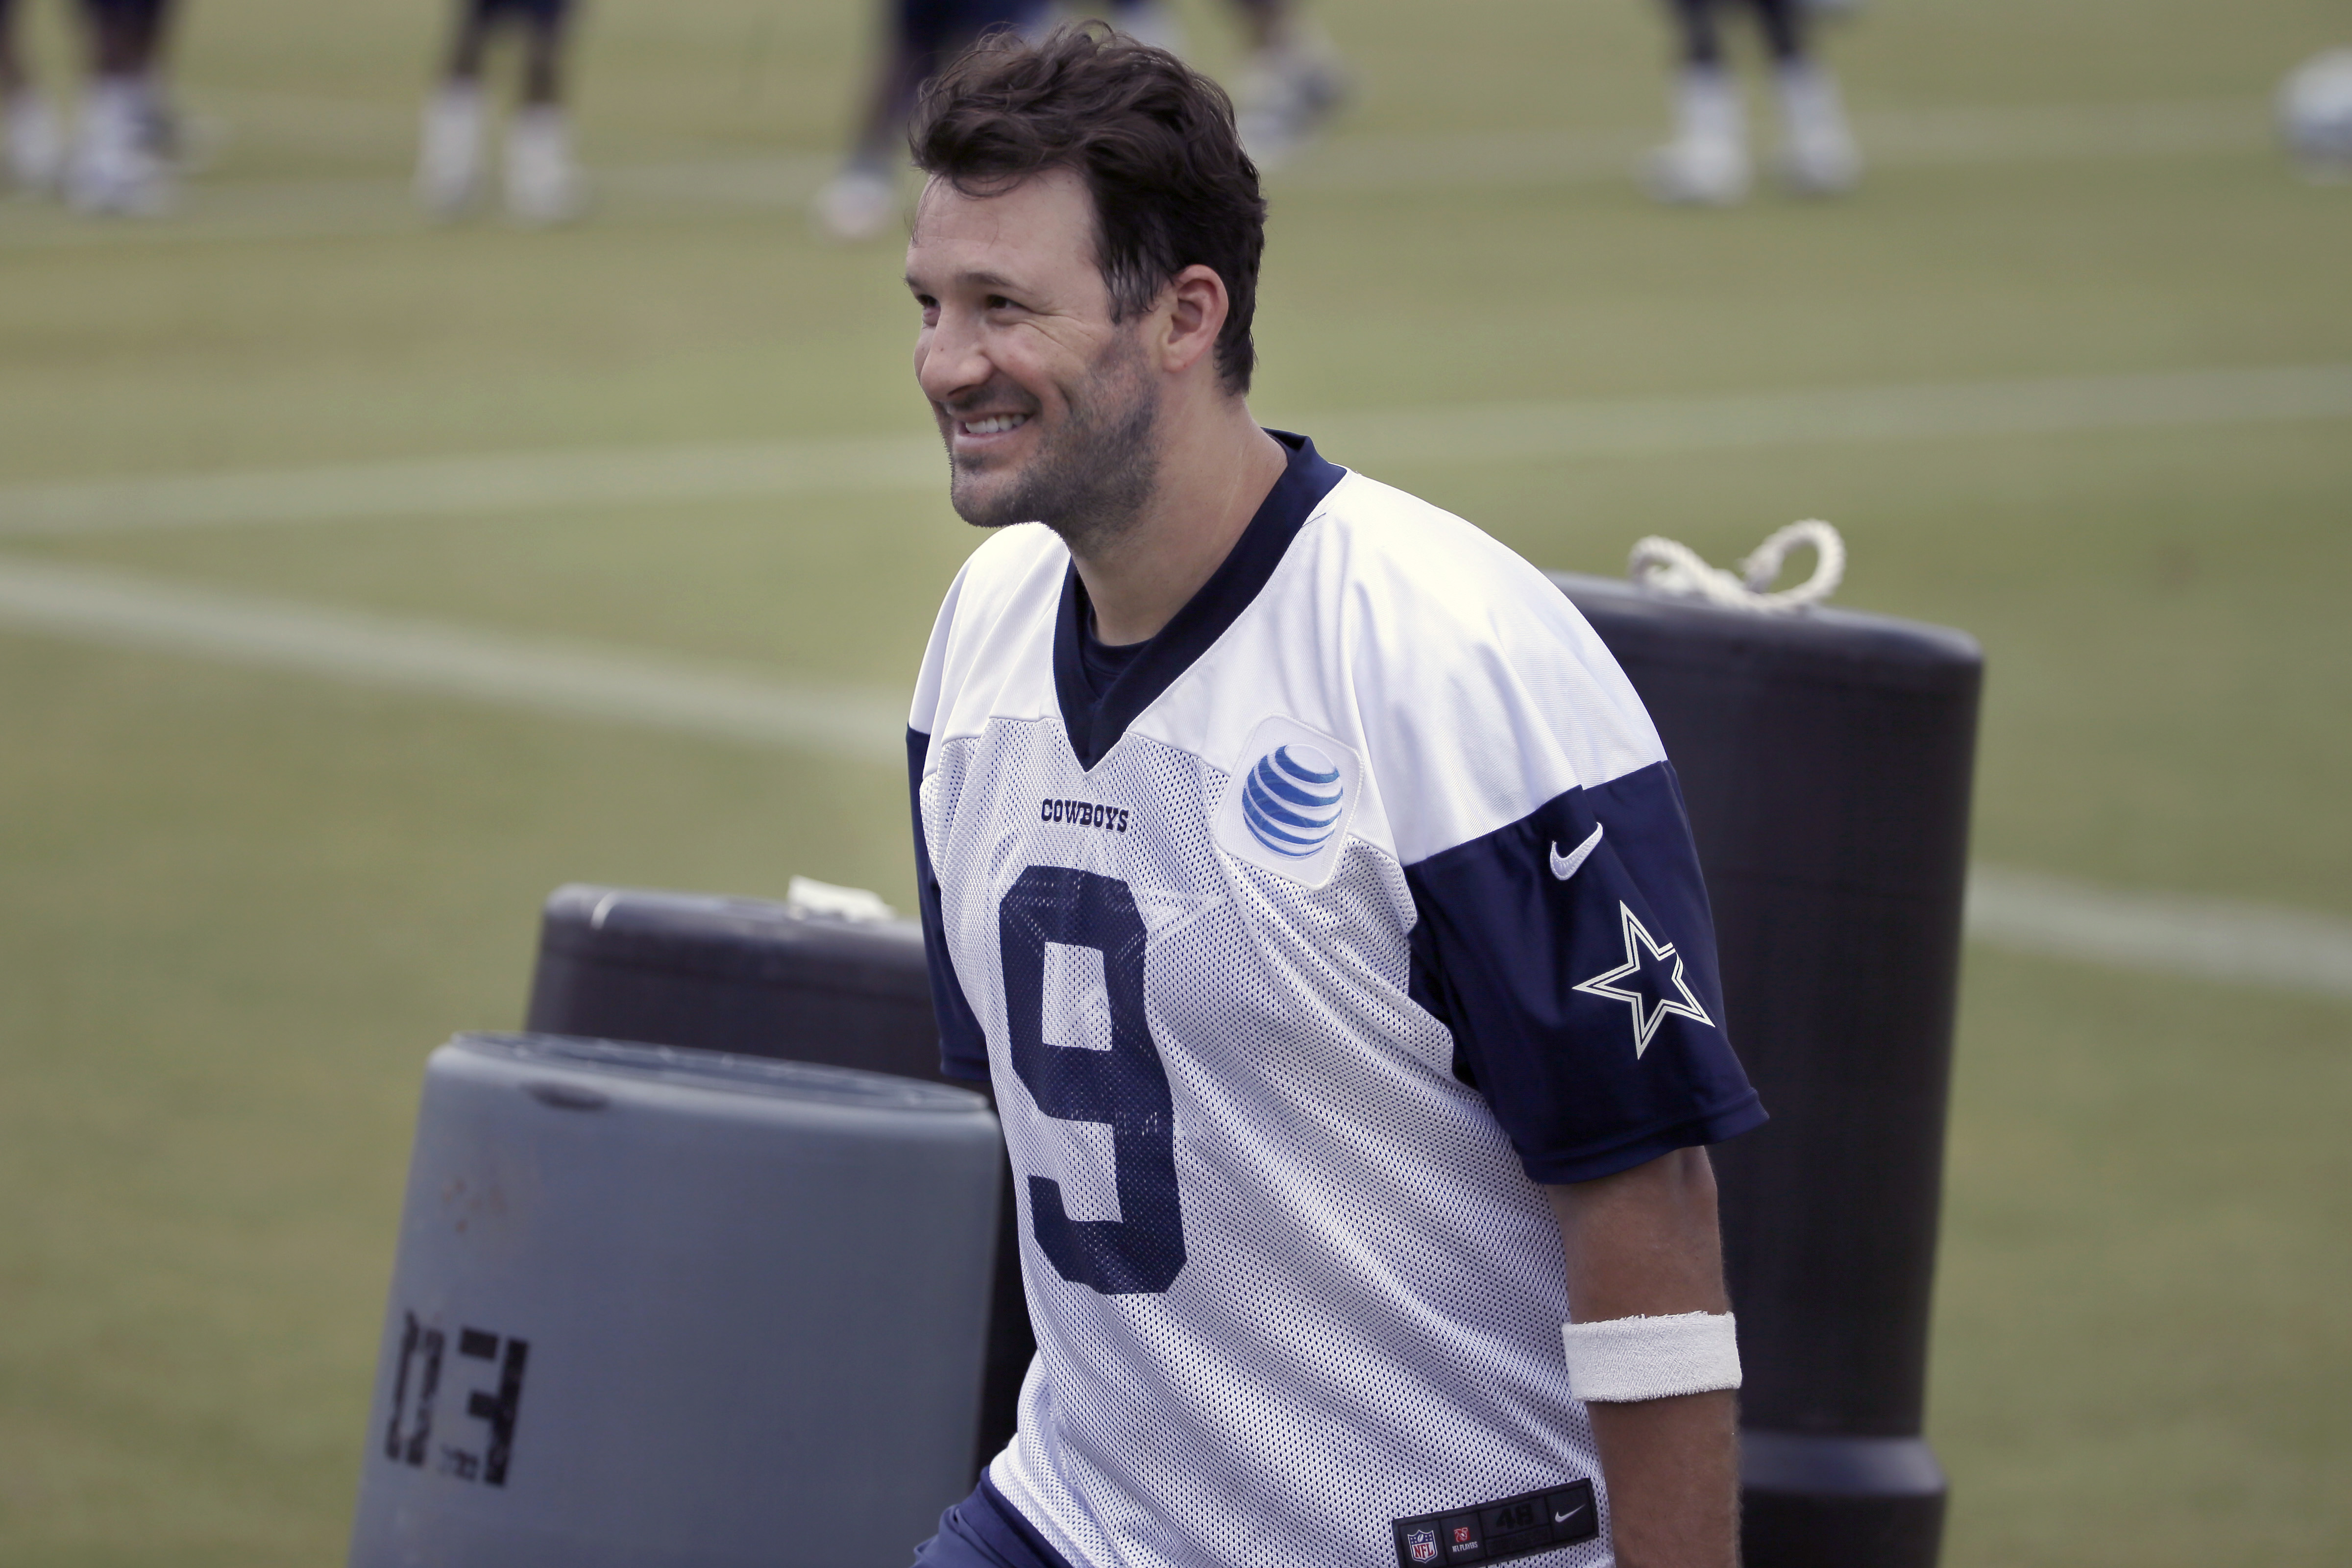 Dallas Cowboys quarterback Tony Romo smiles as he walks off the filed during an NFL football organized team activity,  Wednesday, June 3, 2015, in Irving, Texas. (AP Photo/LM Otero)